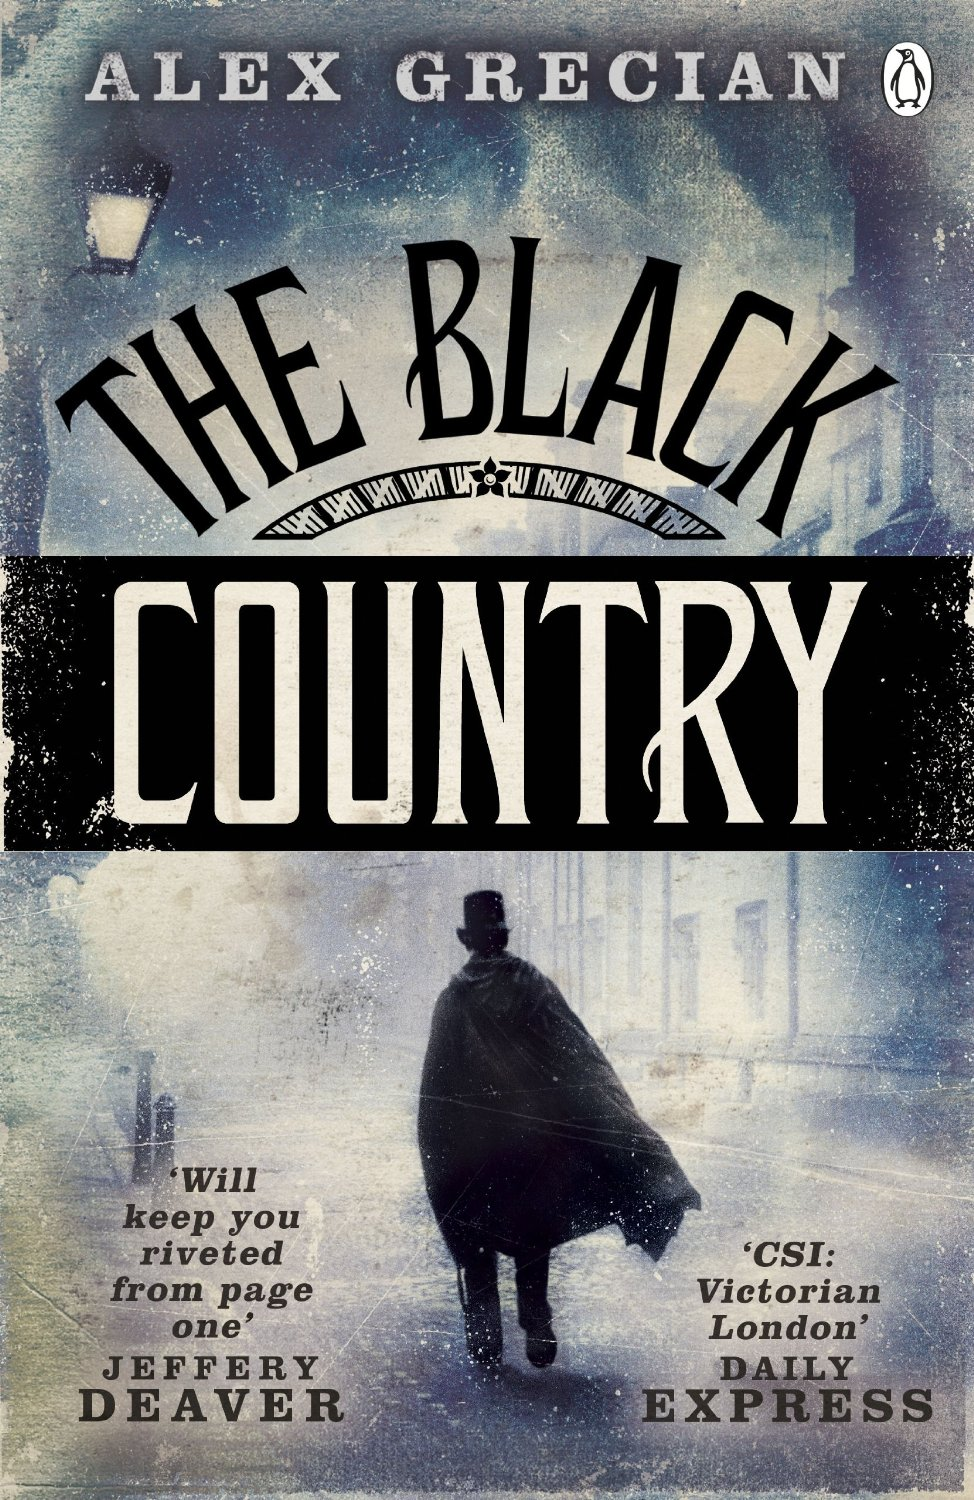 Alex Grecian, The Black Country